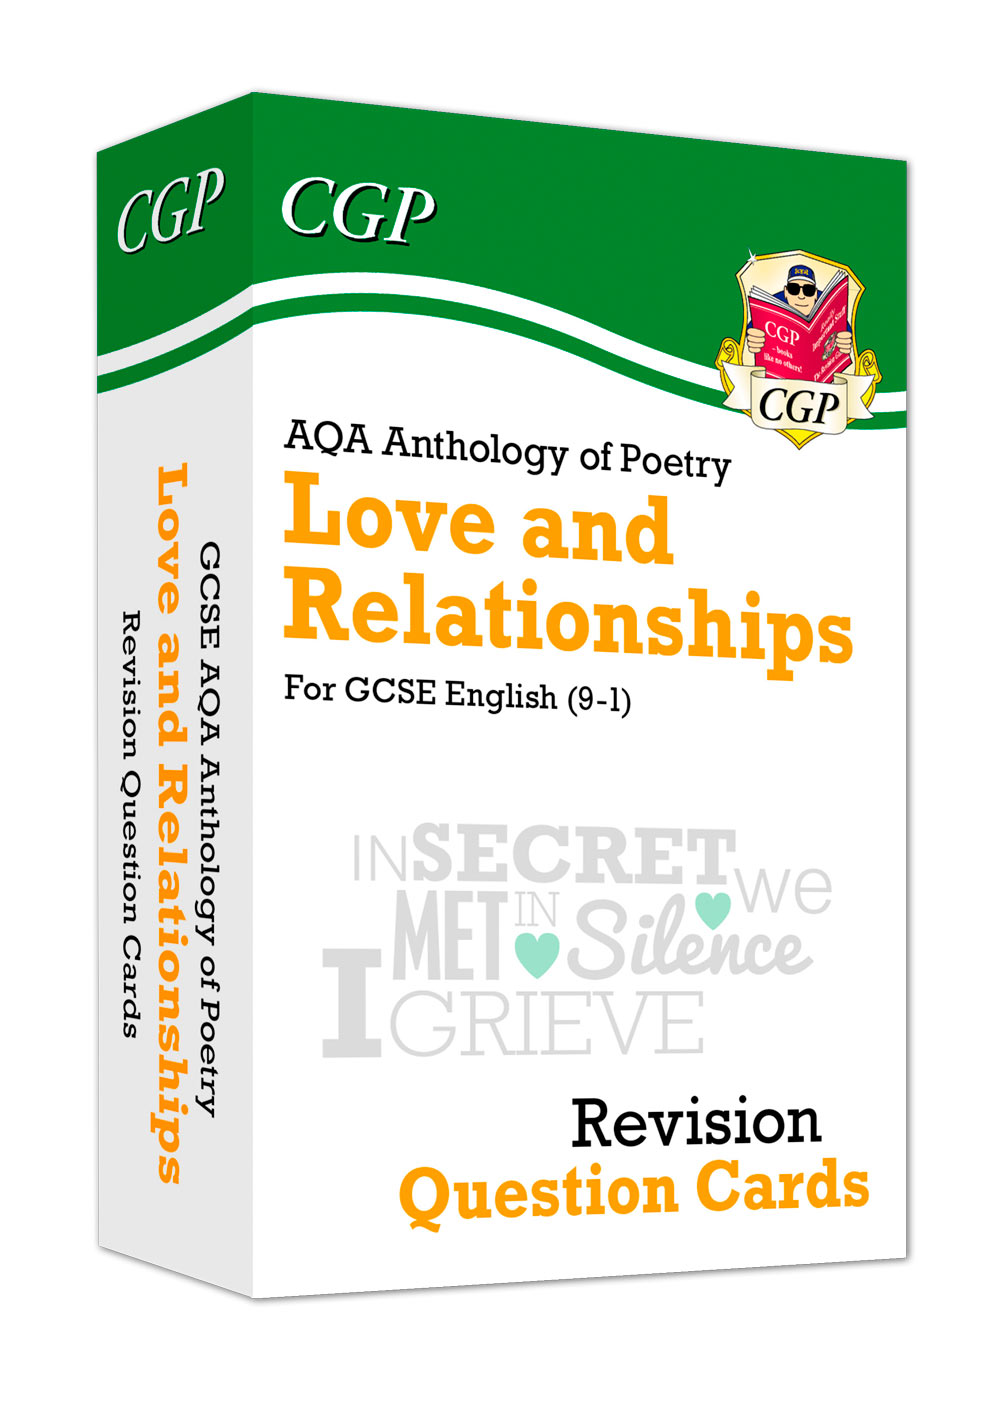 ARHF41 - New 9-1 GCSE English: AQA Love & Relationships Poetry Anthology - Revision Question Cards